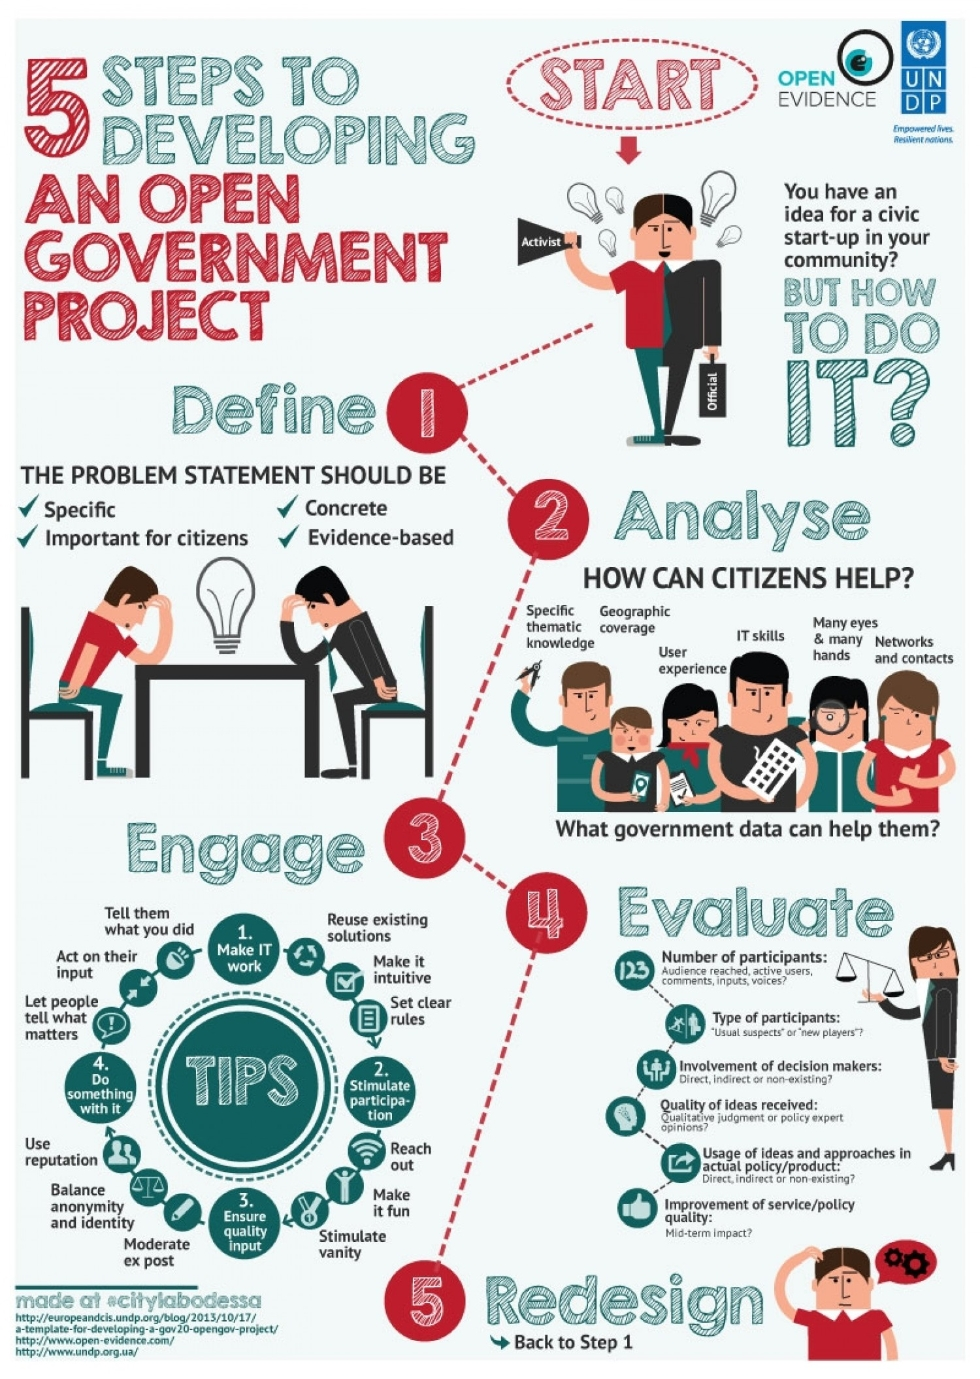 5-steps-to-developing-an-open-government-project